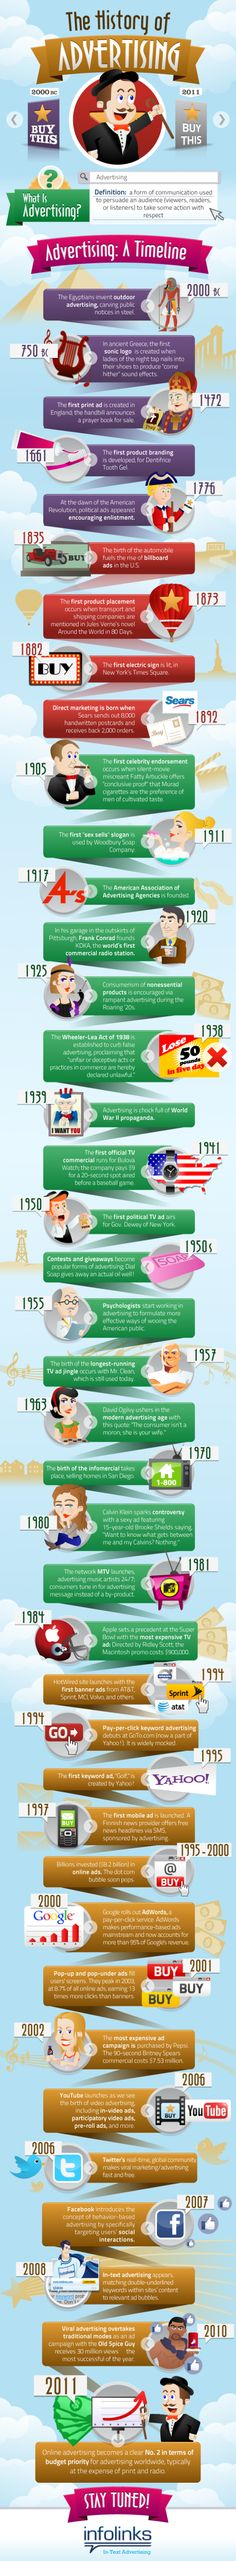 Amazing #infographic on The History of #Advertising. #Marketing